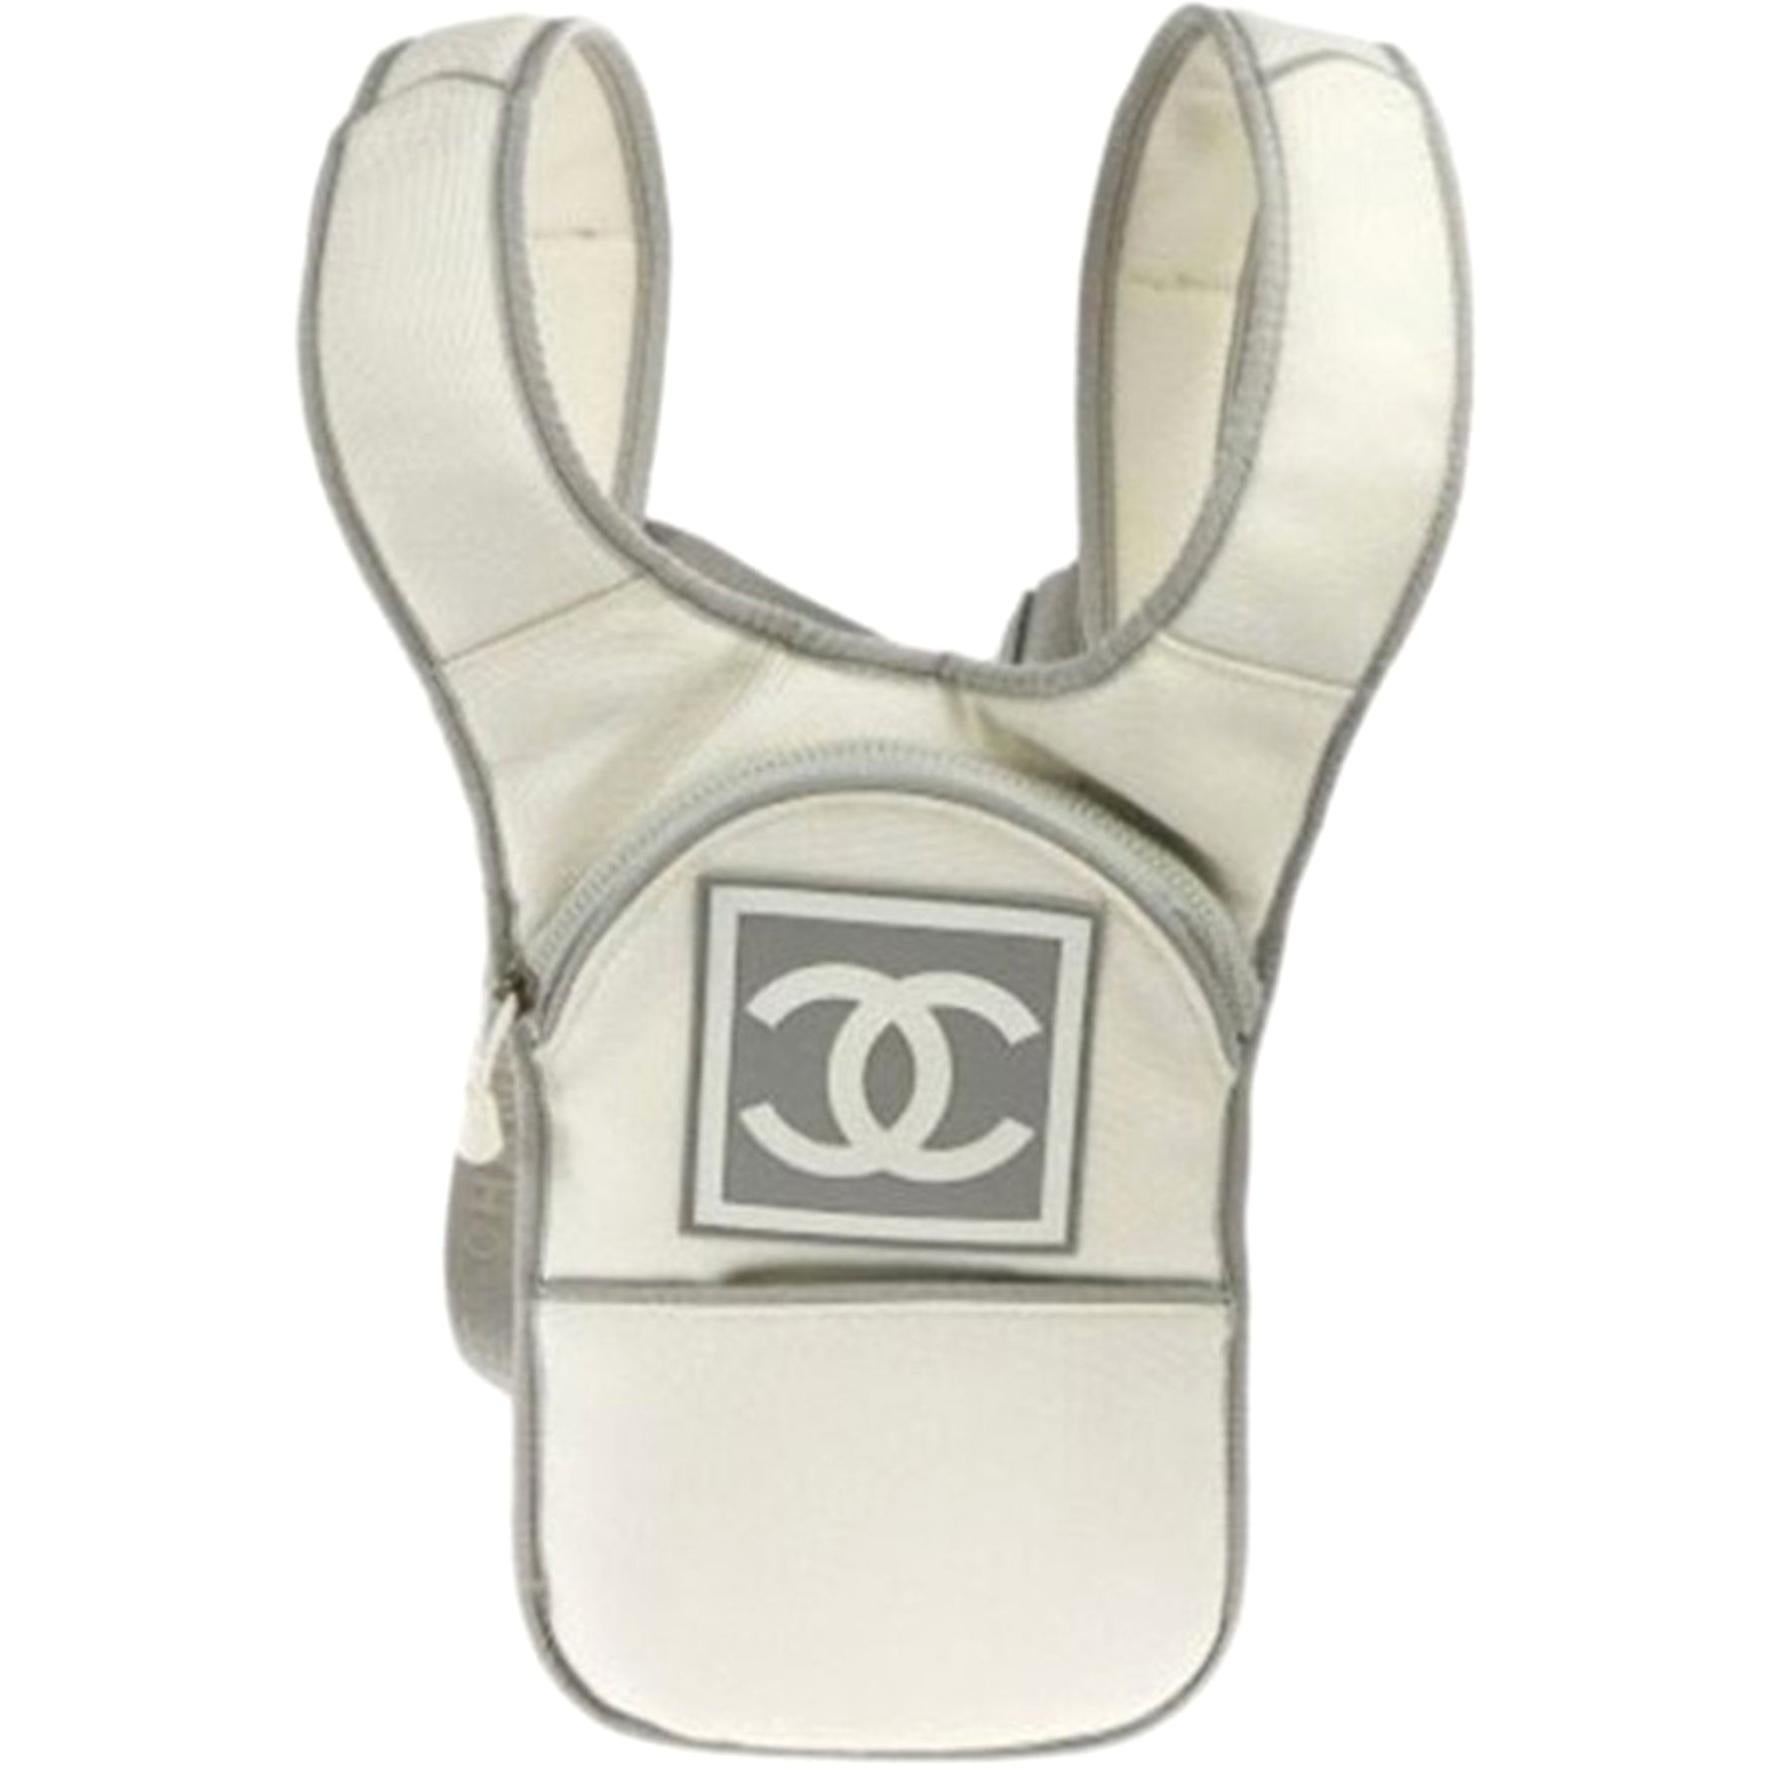 Chanel Vintage Sport Rare White and Grey Nylon Backpack